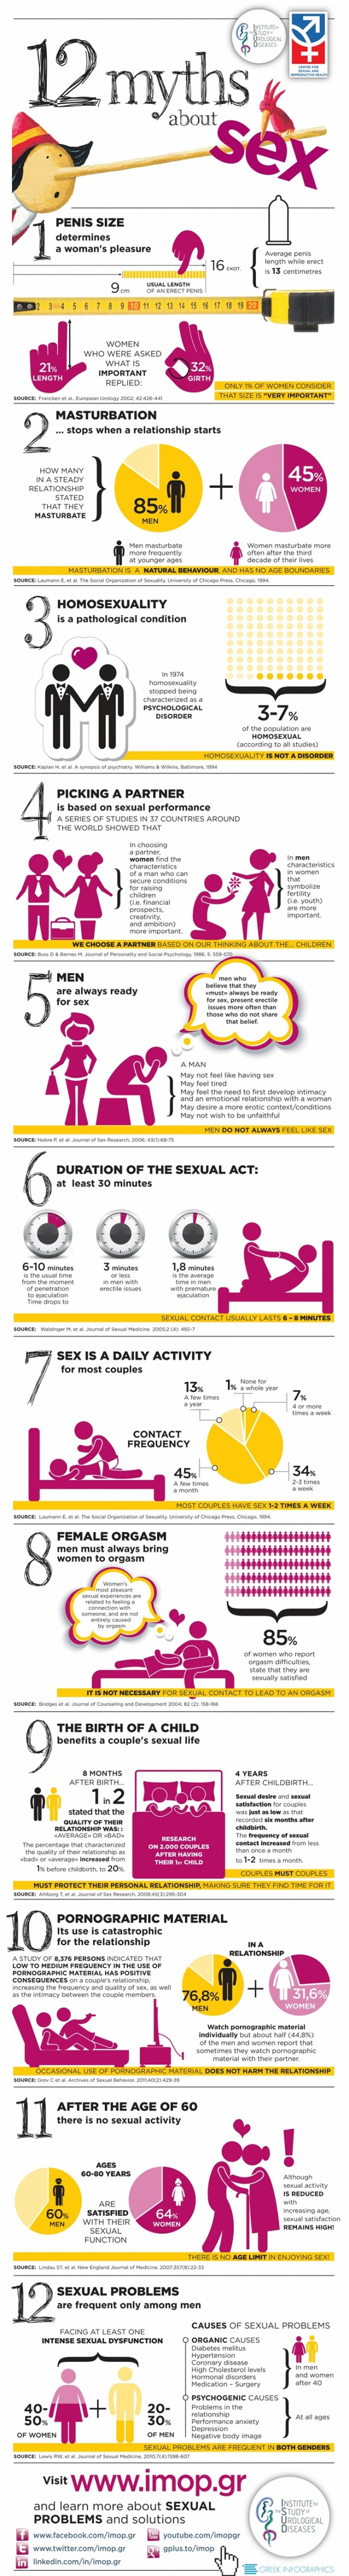 12-myths-about-sex